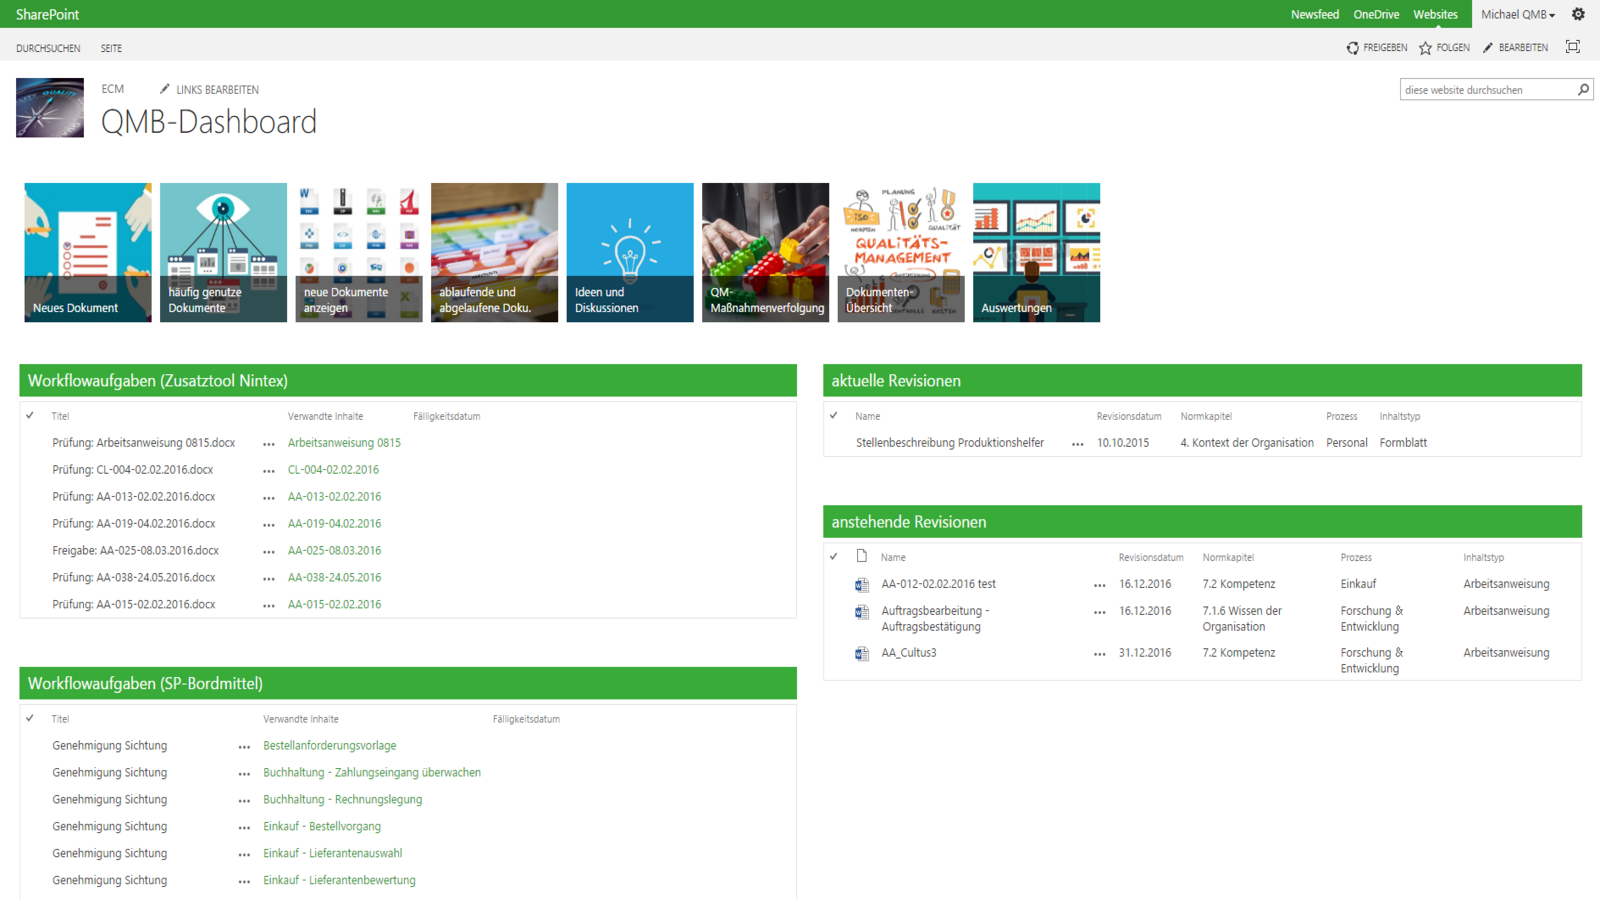 SharePoint Qualitätsmanagement Dashboard